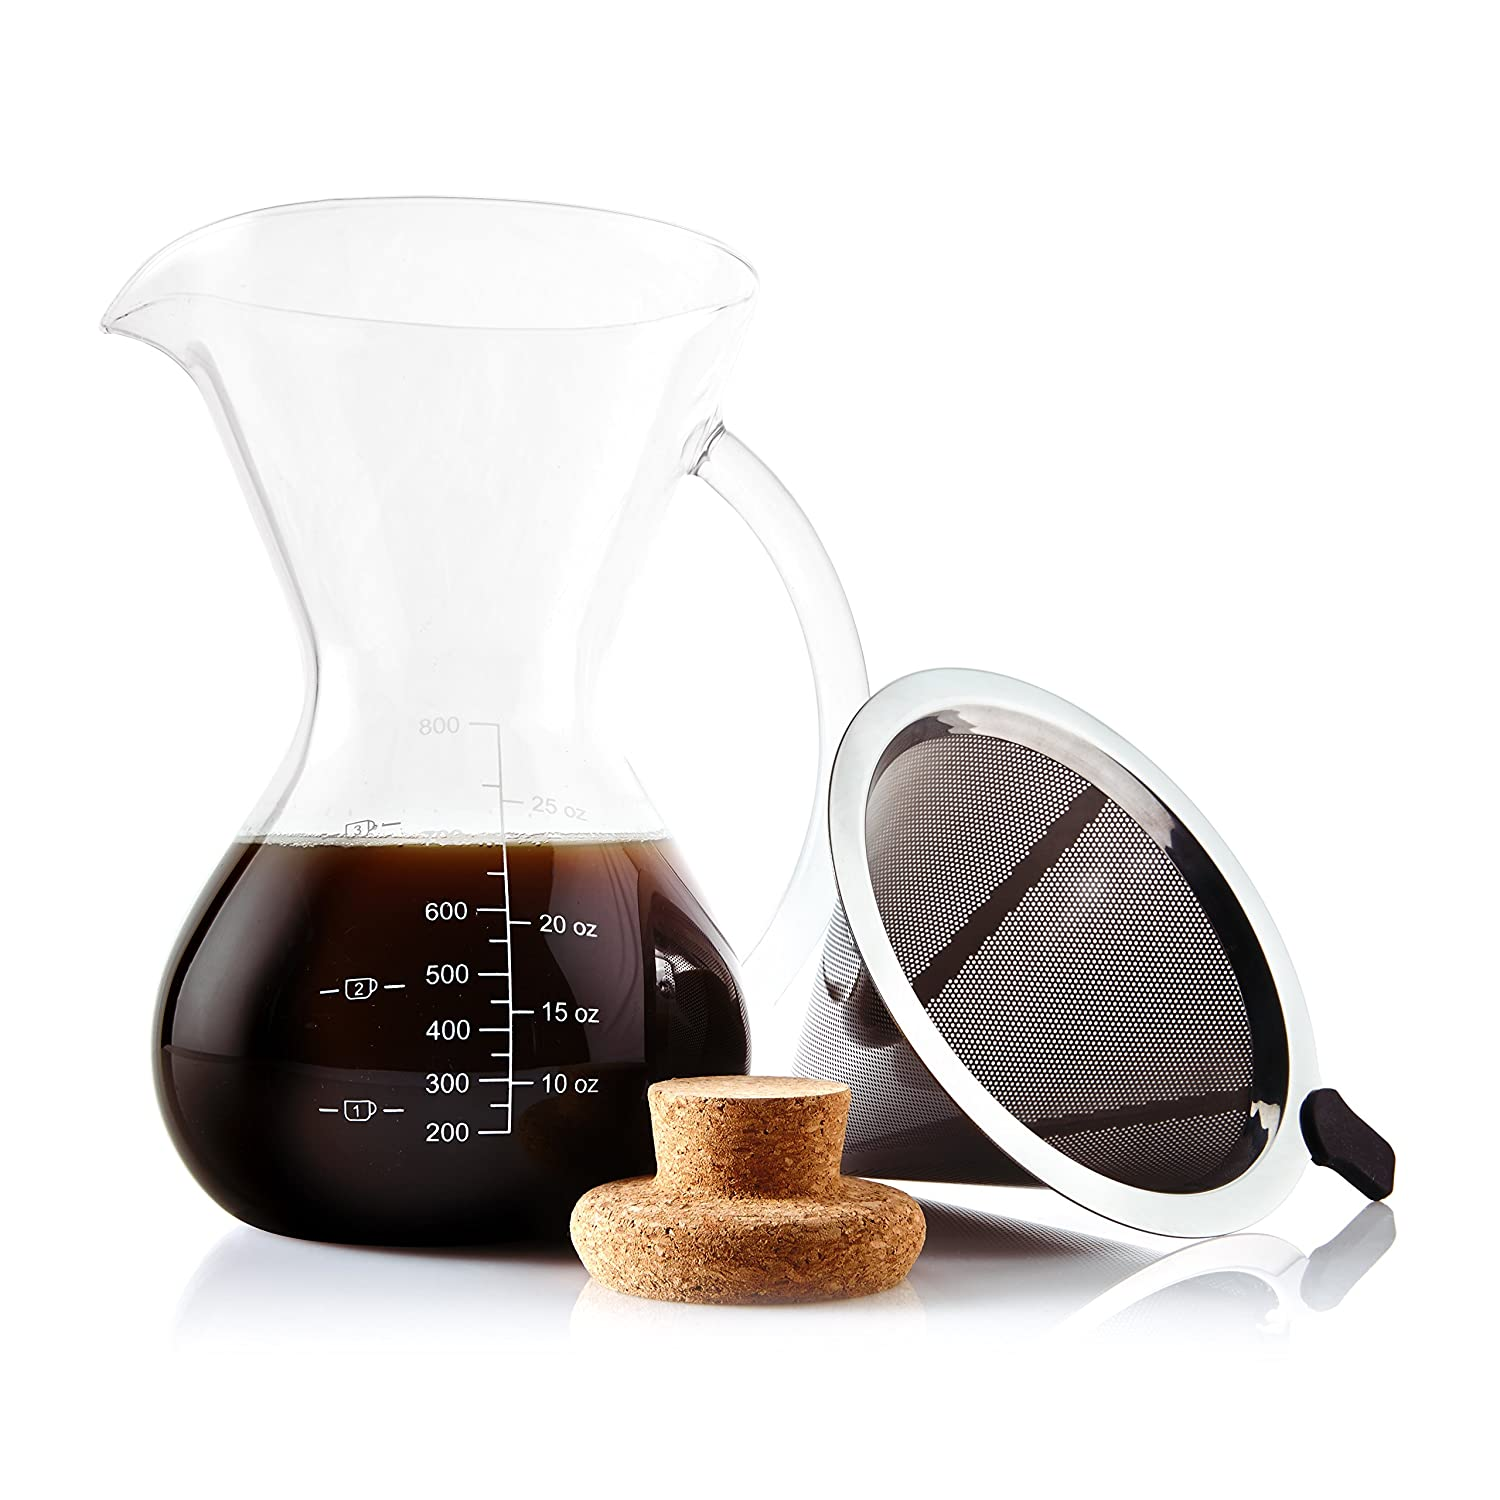 Apace Living Pour Over Coffee Maker Set w/Coffee Scoop and Cork Lid - Elegant Coffee Dripper Pot w/Glass Carafe & Permanent Stainless Steel Filter (800 ml / 27 oz)